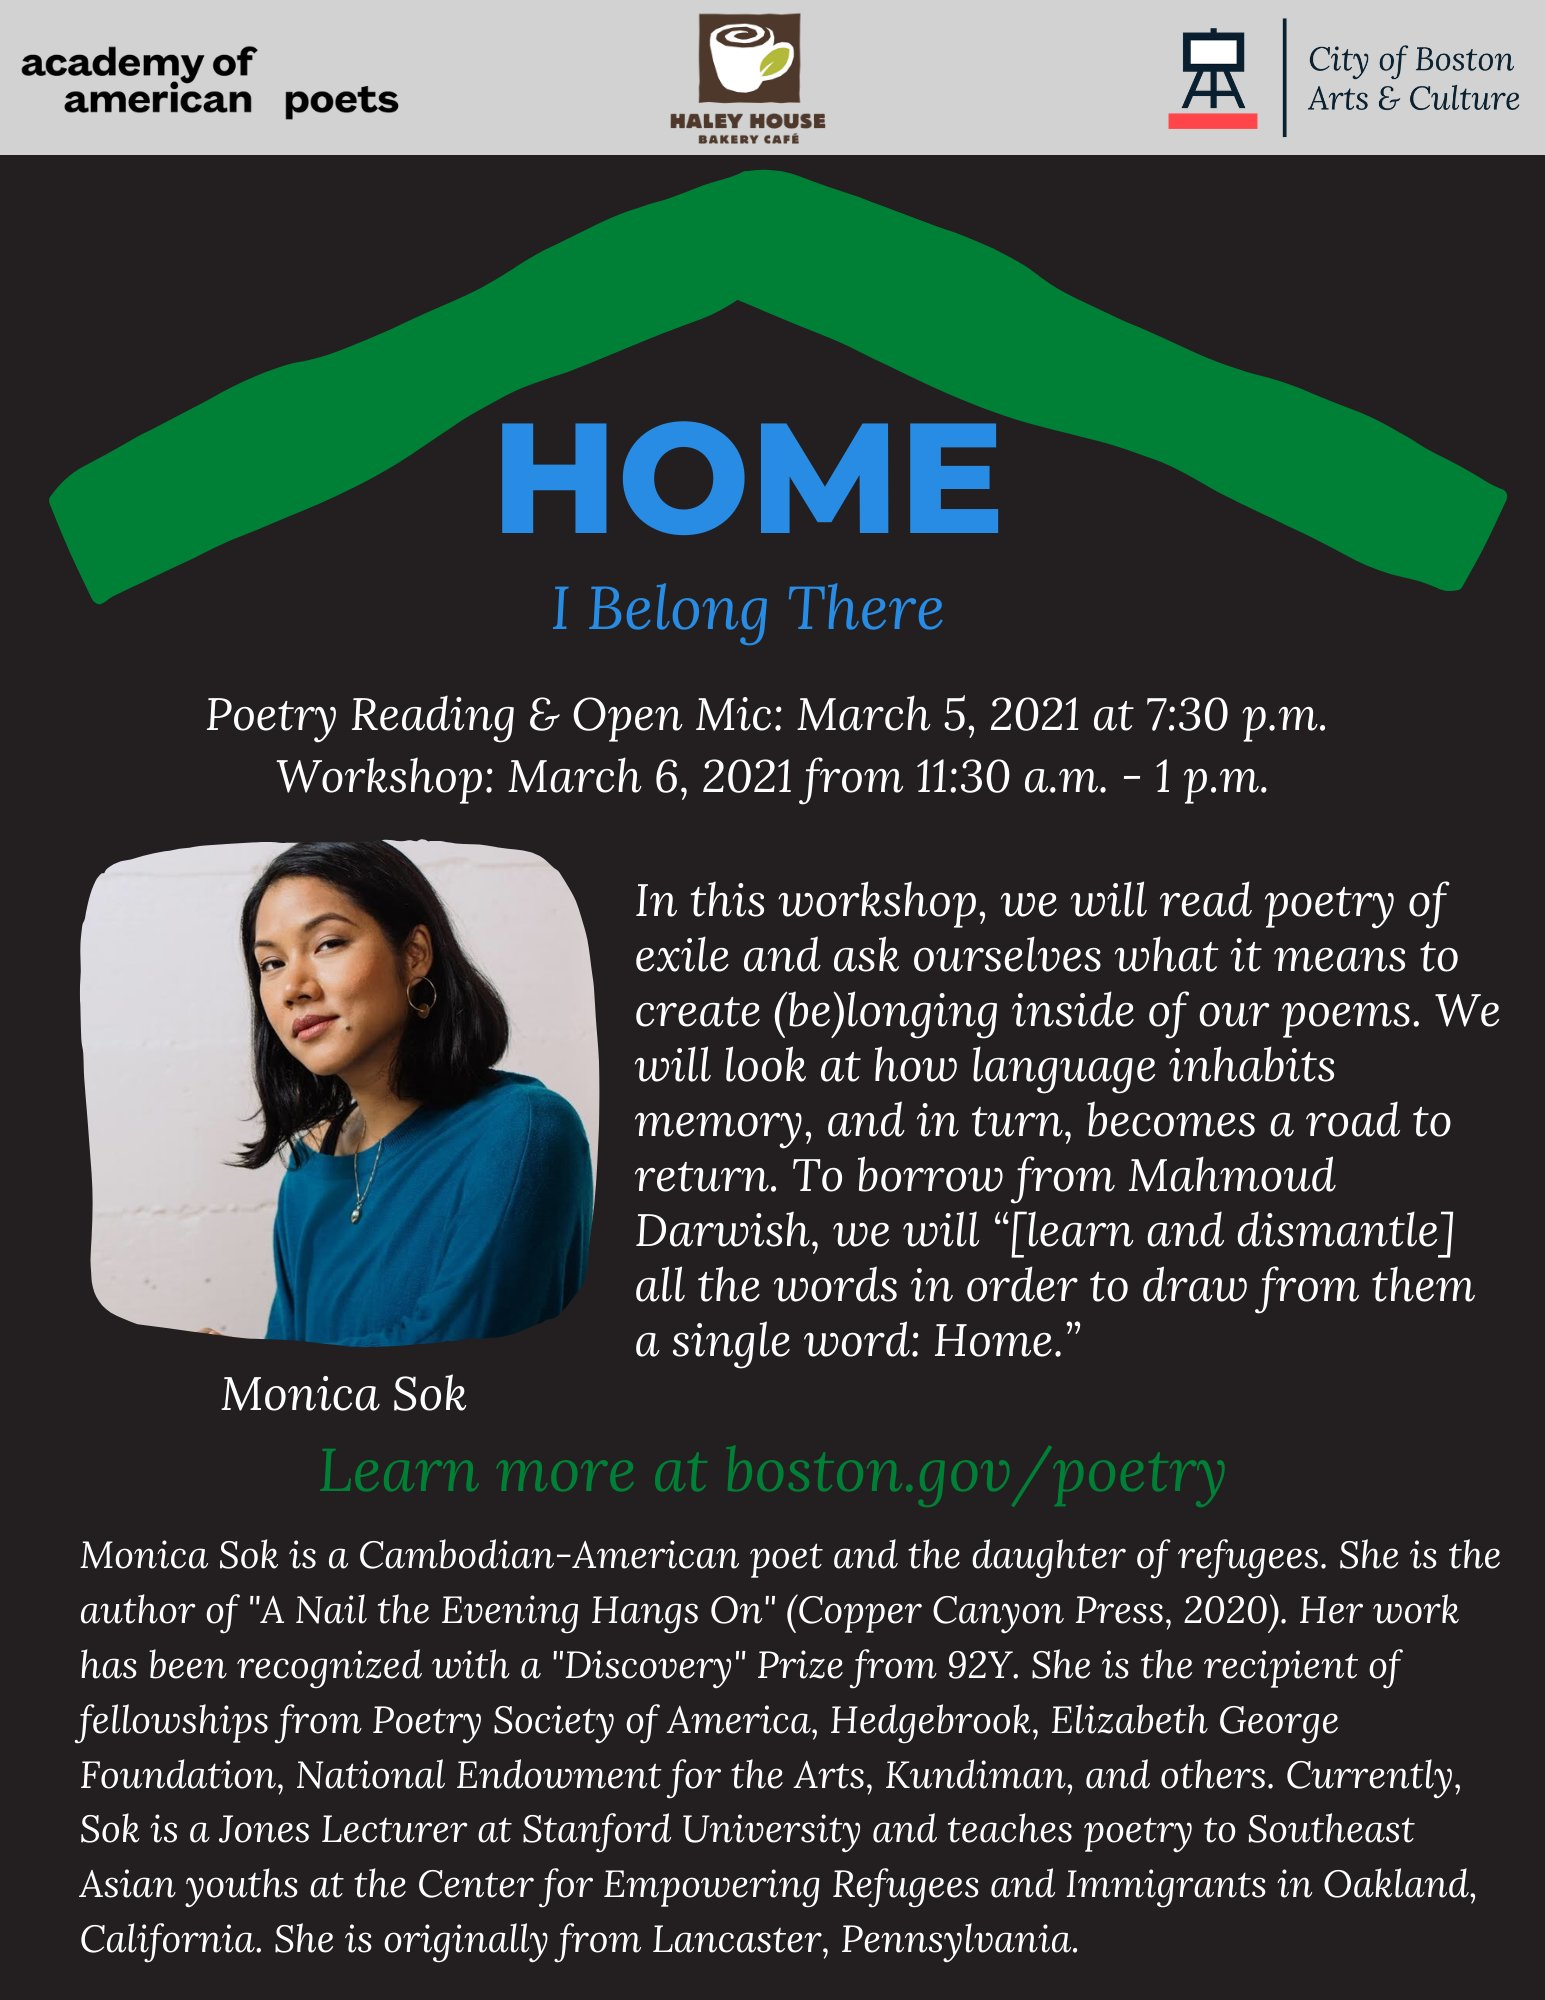 Mayor's Office of Arts & Culture Boston: HOME Poetry reading March 5-6